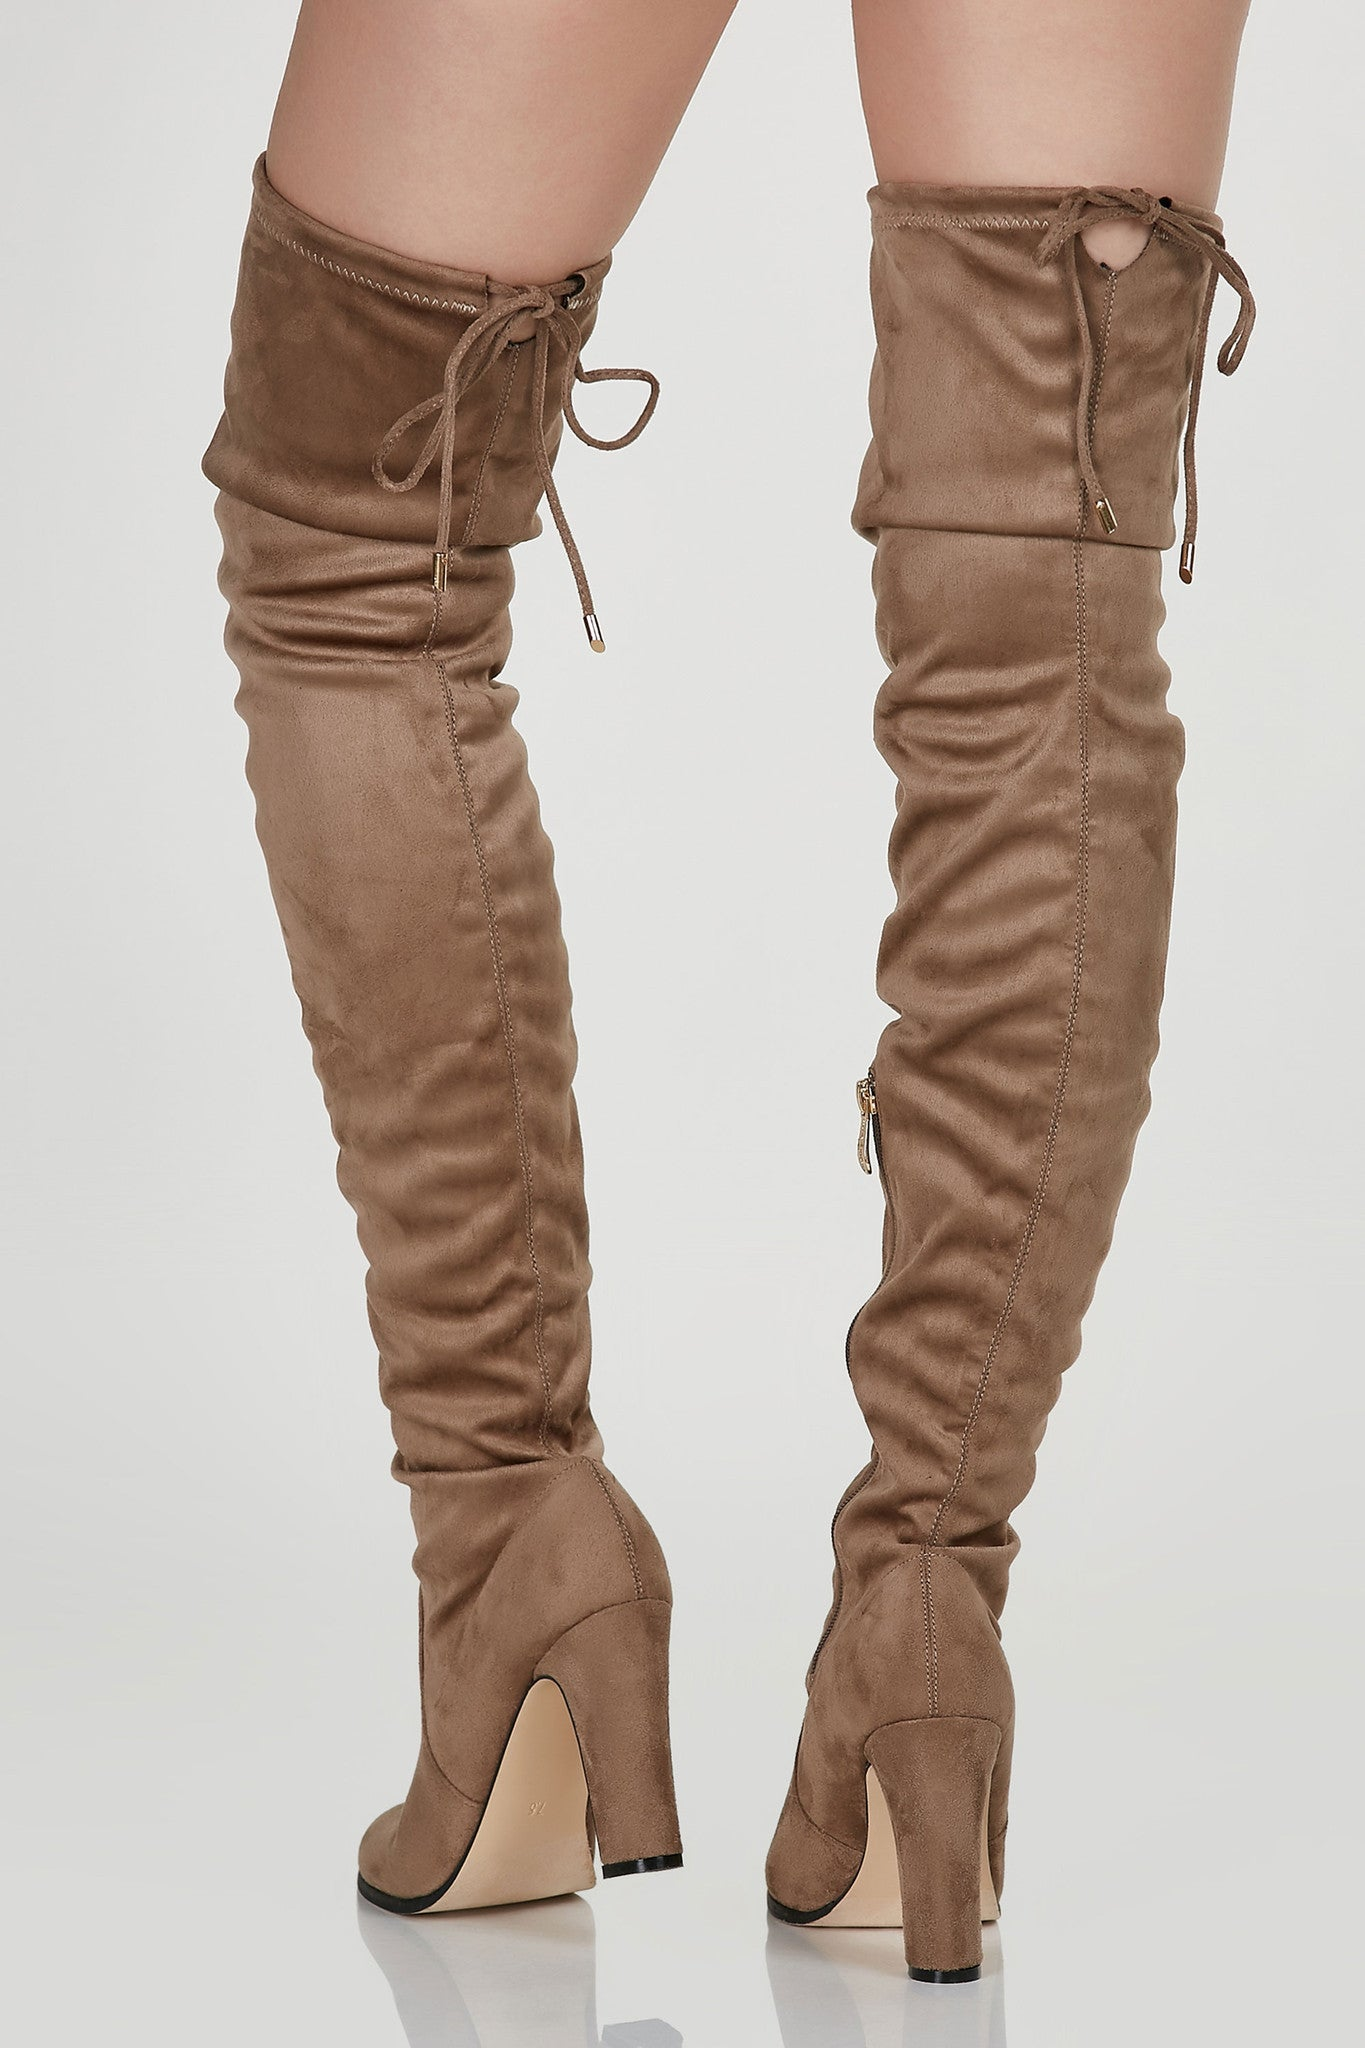 Slim fit thigh high boots with soft suede finish. Side zip closure with ties for fit at top.